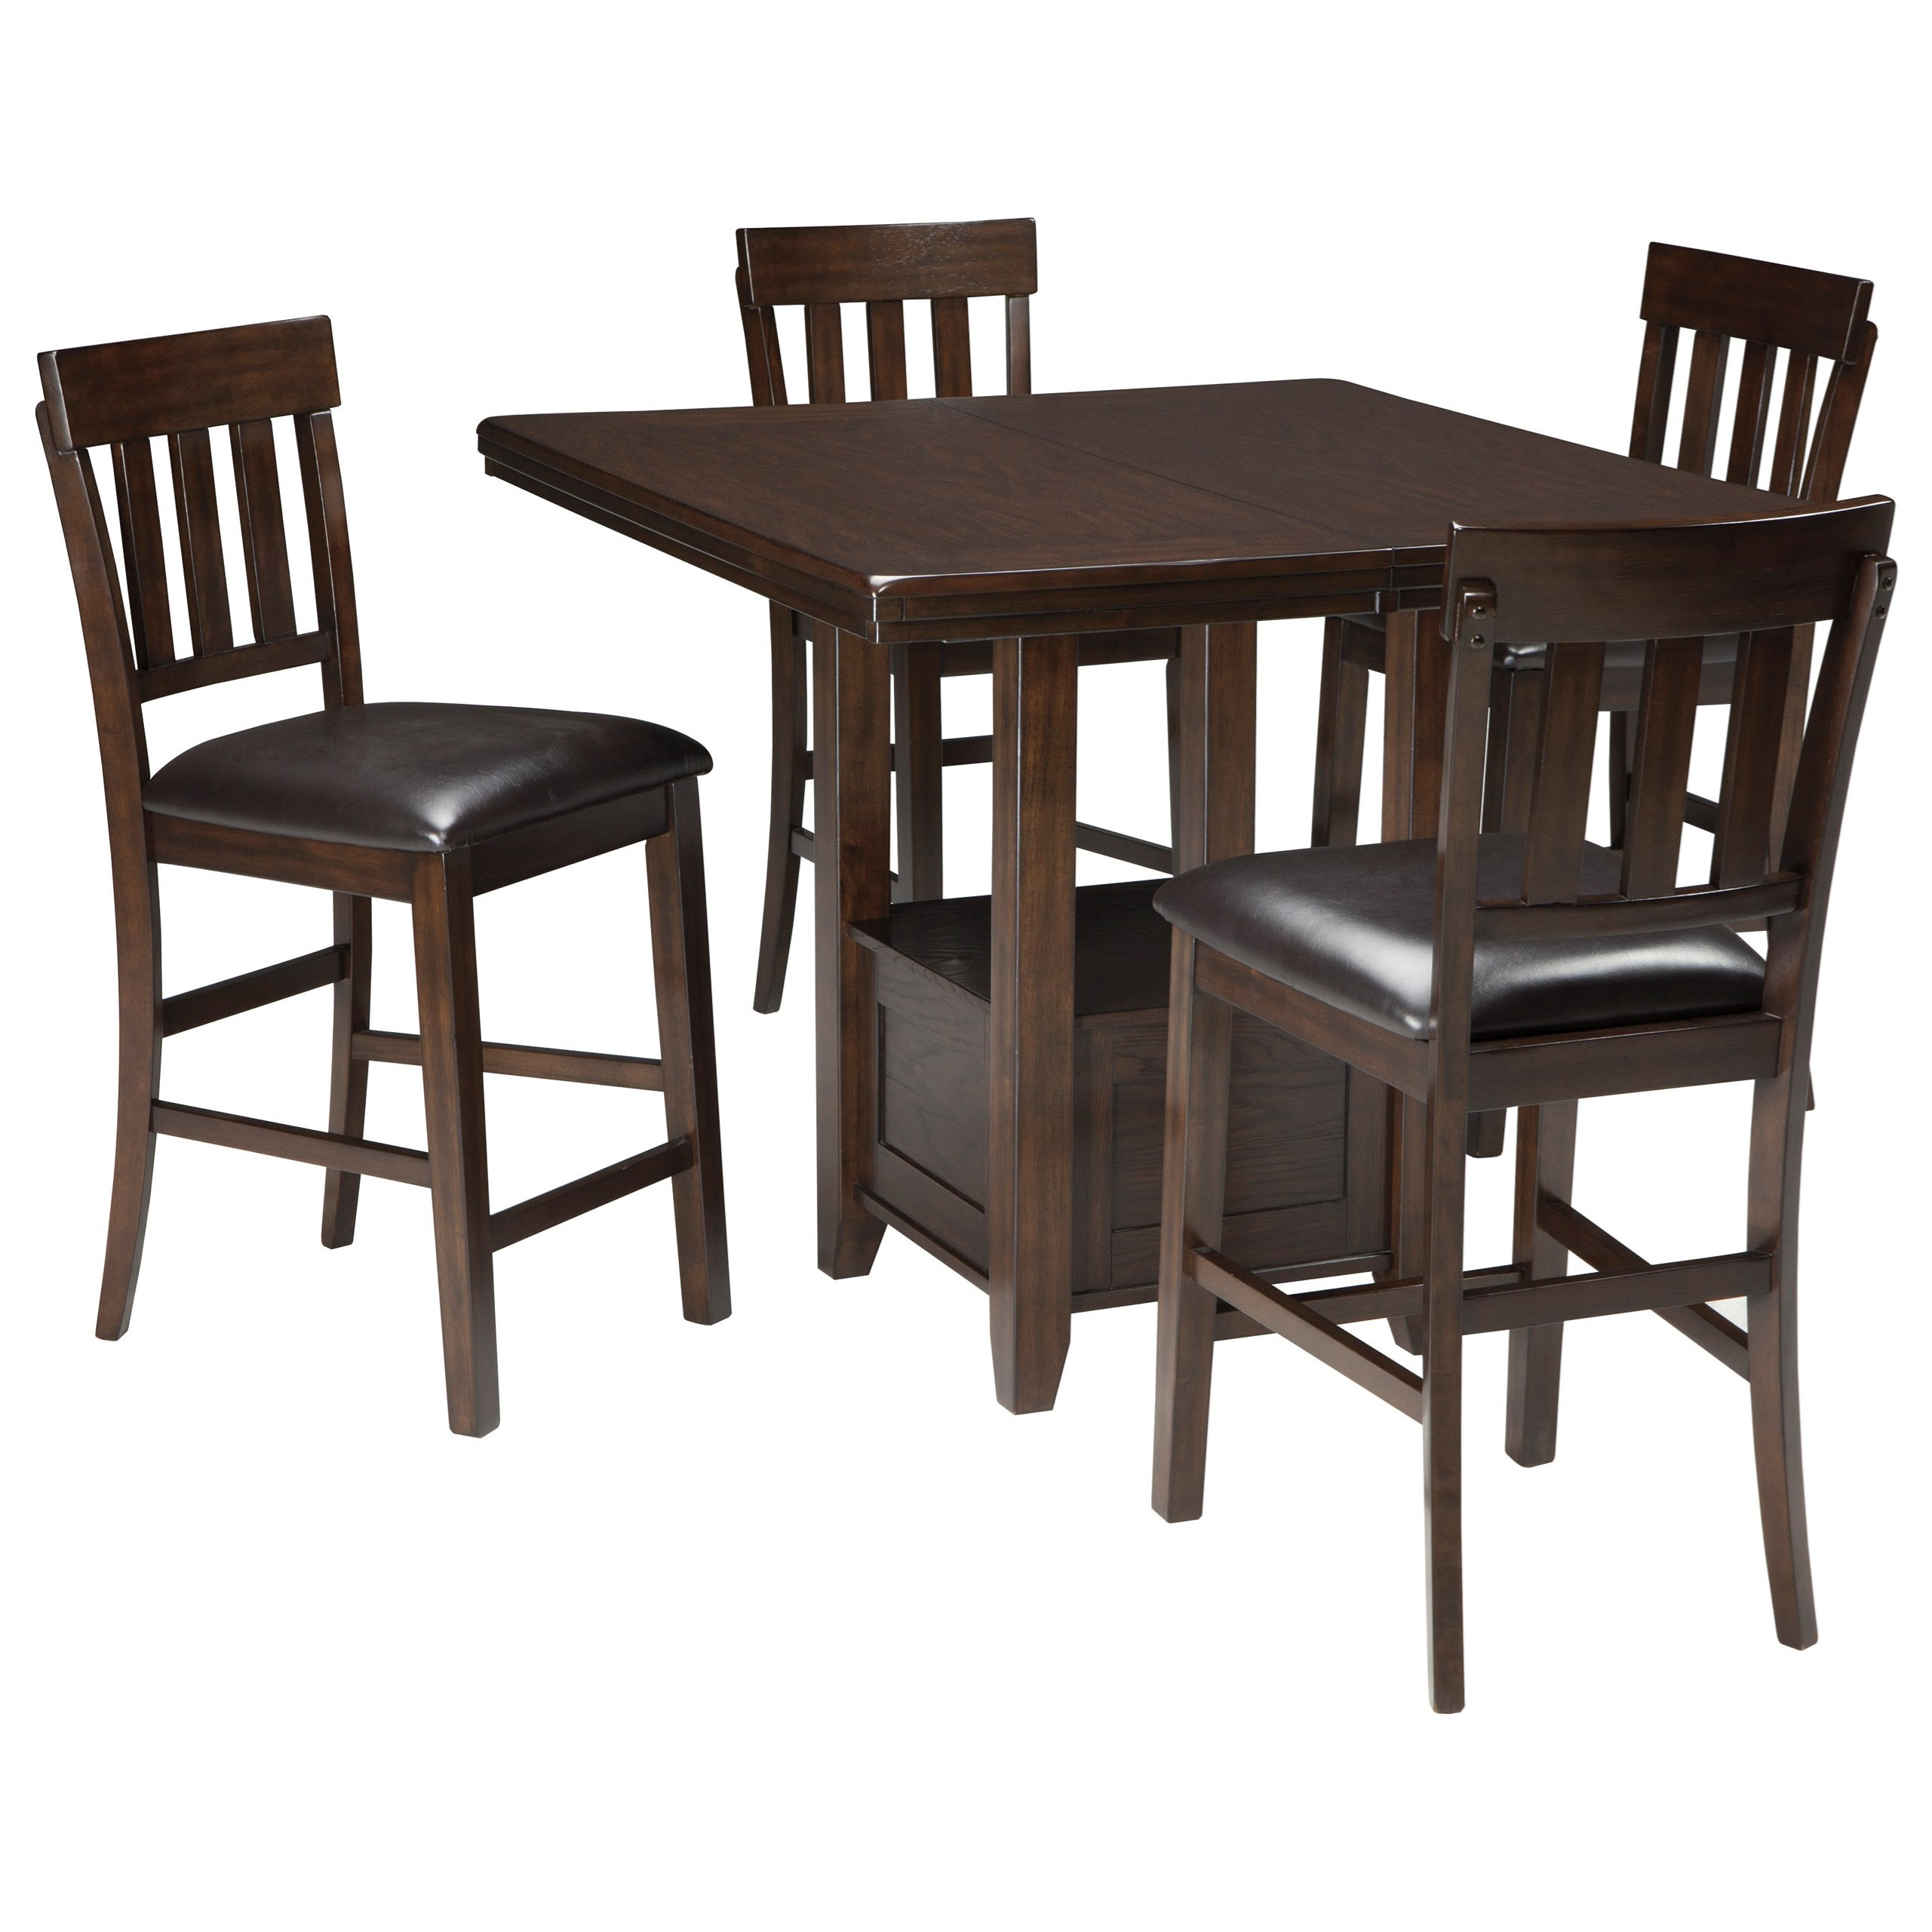 Haddigan 5-Piece Dining Room Counter Ext Table Set by Signature Design by Ashley at Darvin Furniture